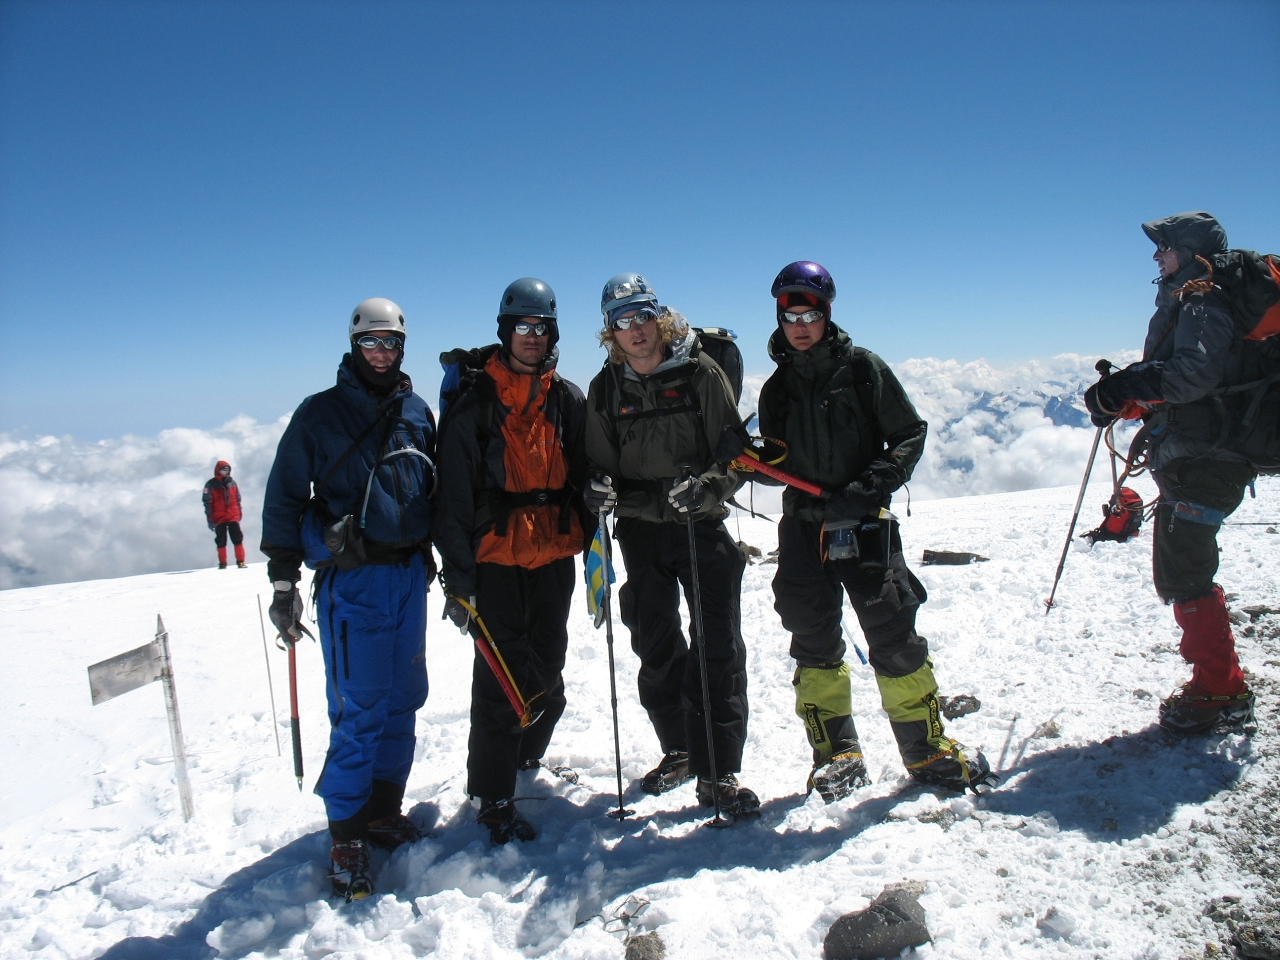 Team Lajt on the summit of Elbrus